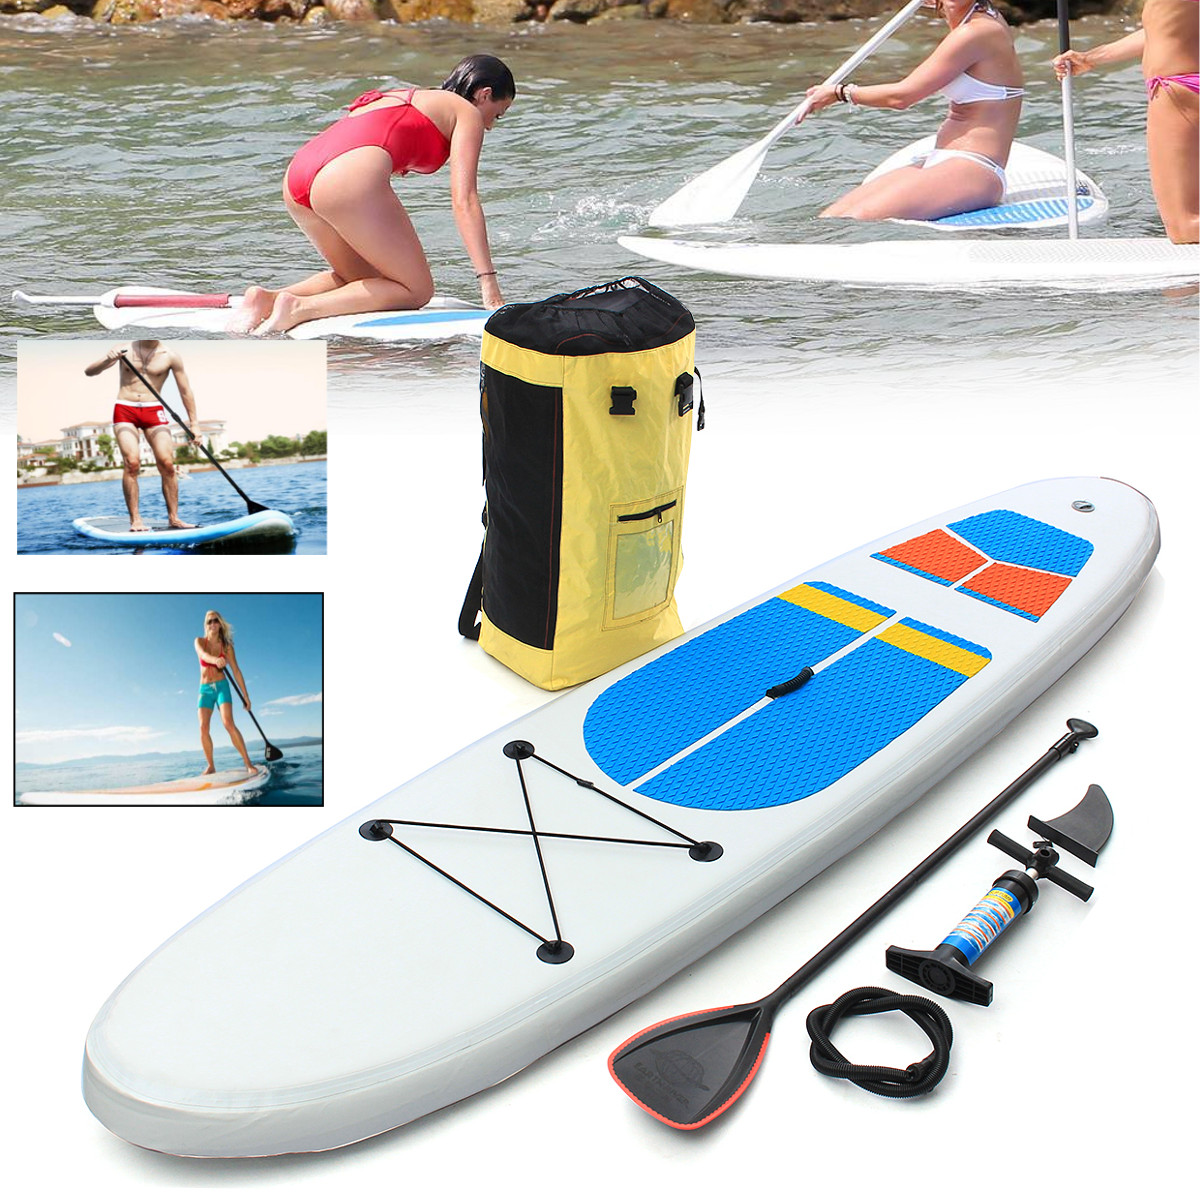 Gofun 305 * 81 * 10cm Stand Up Paddle Surfboard Inflatable Board SUP Set Wave Rider Blue inflatable surf board sup paddle boat inflatable stand up paddle board inflatable sup board inflatable paddleboard